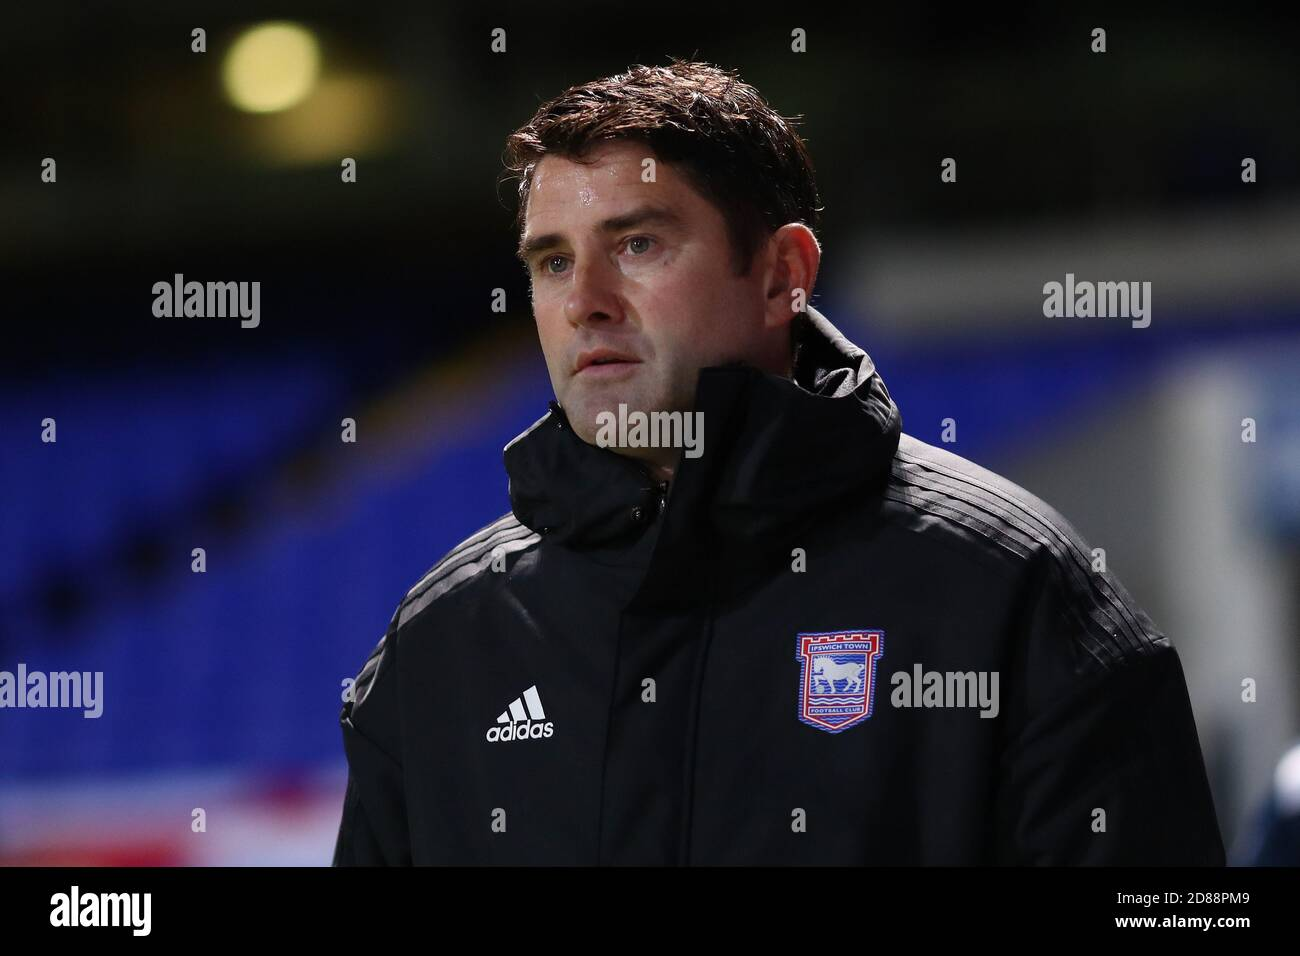 New ipswich manager betting odds xenopoulos shoes nicosia betting